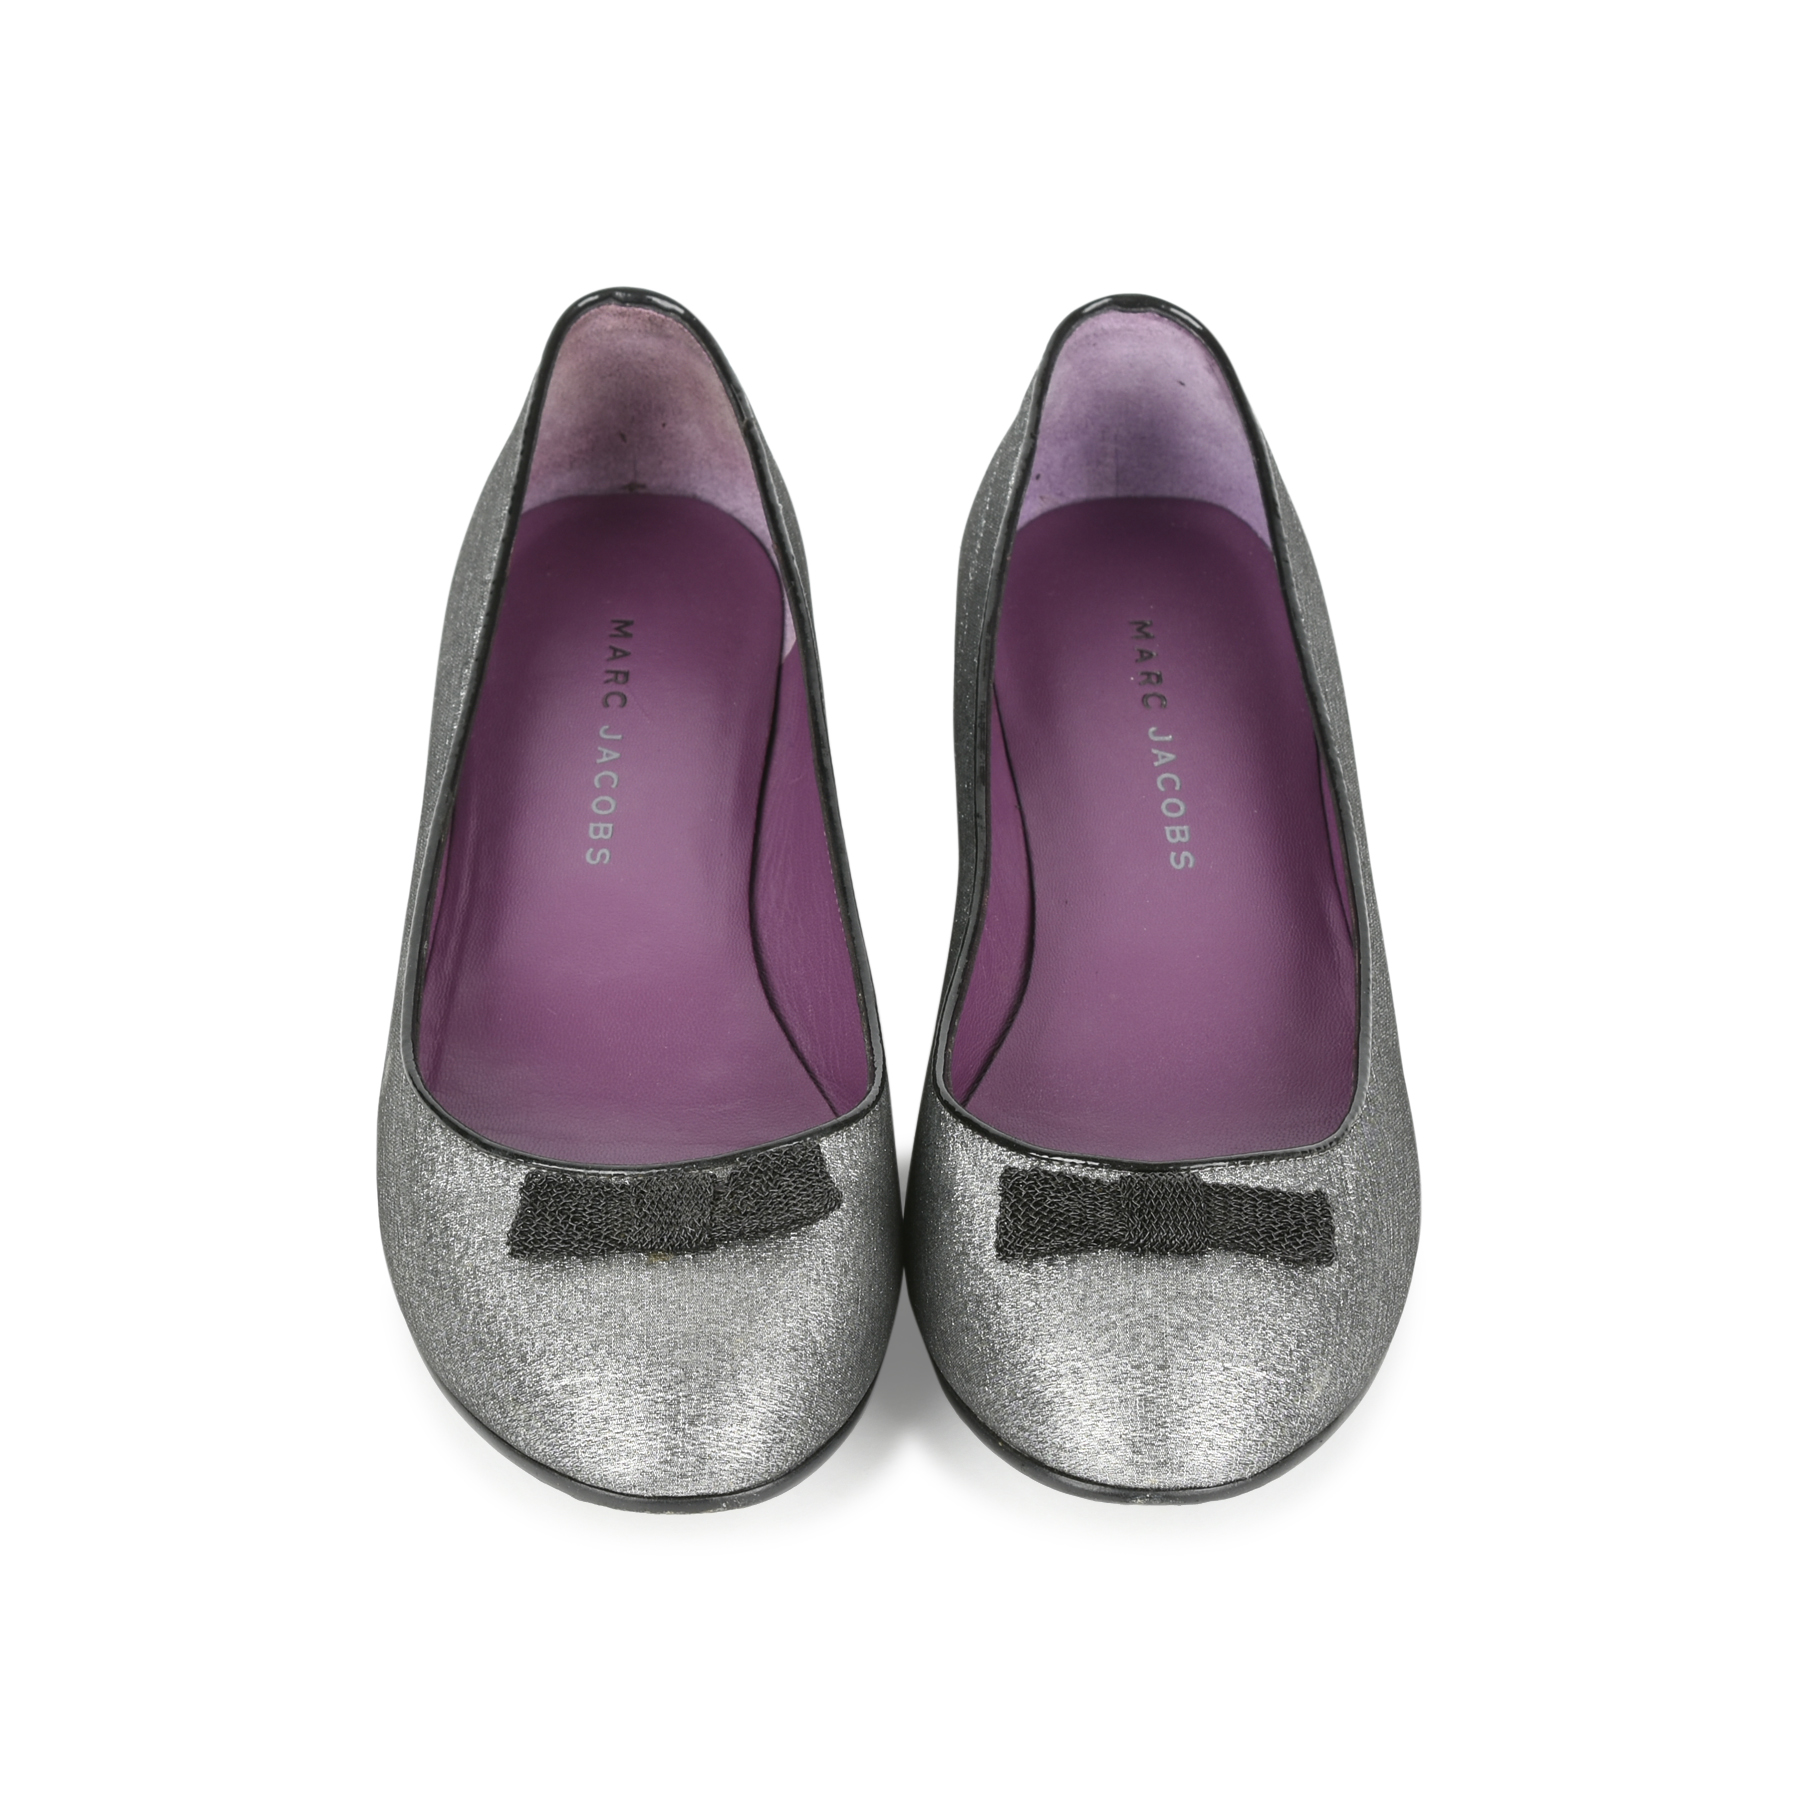 804d36b16ed Authentic Second Hand Marc Jacobs Ballet Flats (PSS-054-00203)